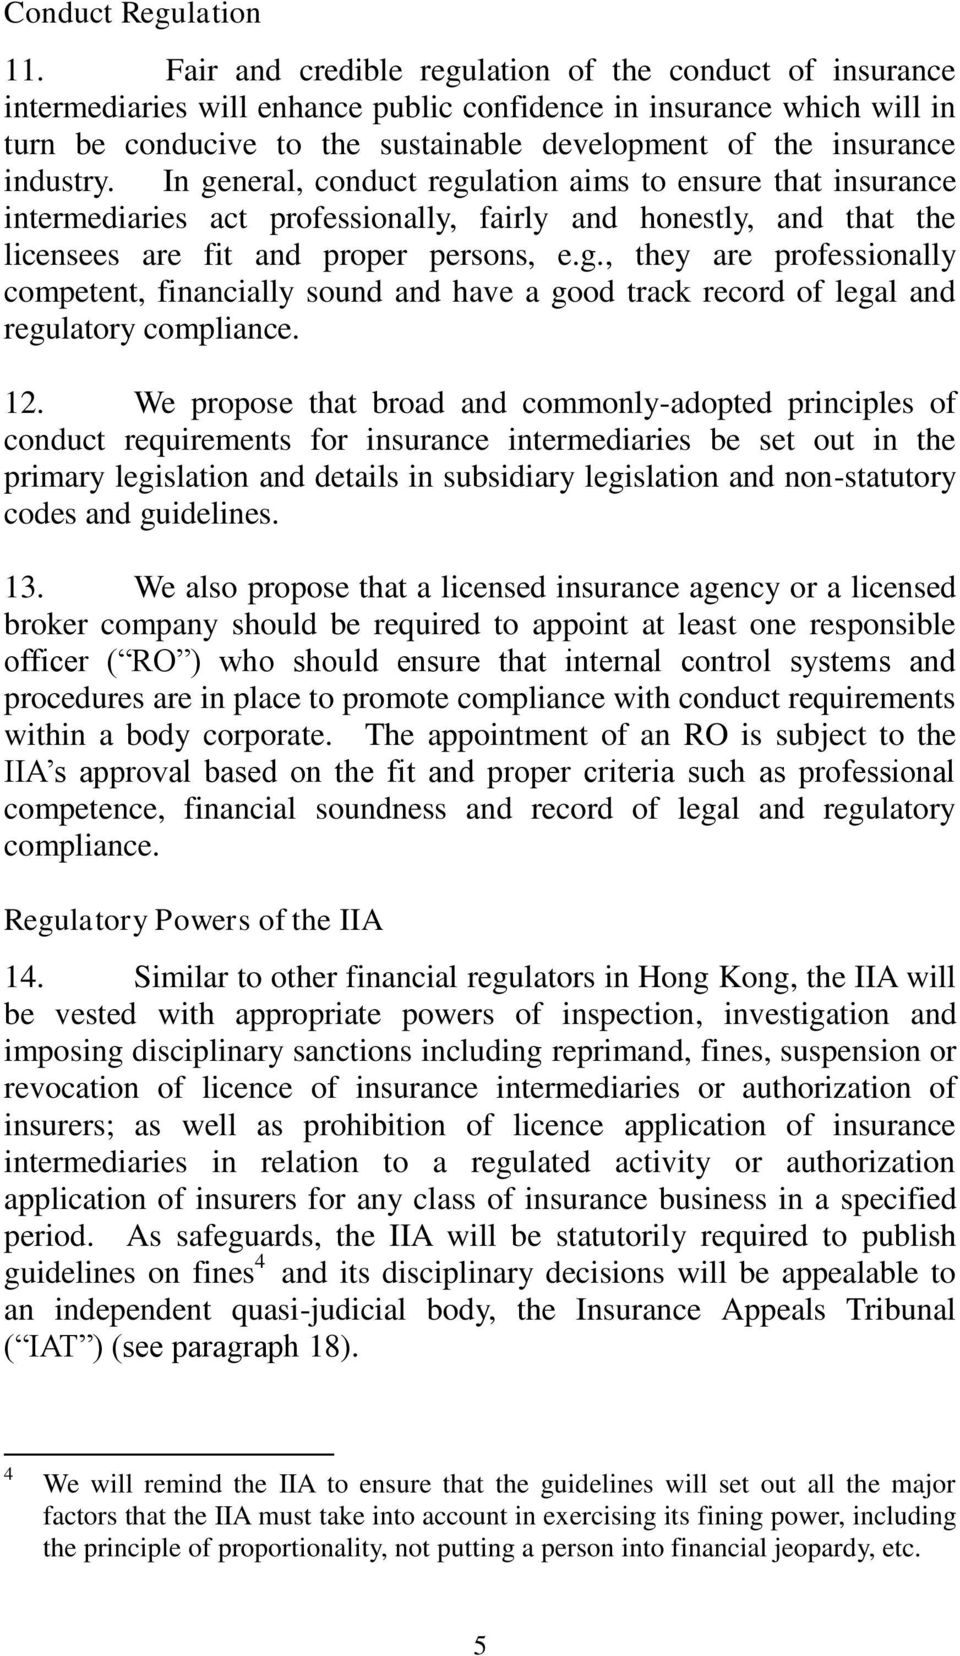 industry. In general, conduct regulation aims to ensure that insurance intermediaries act professionally, fairly and honestly, and that the licensees are fit and proper persons, e.g., they are professionally competent, financially sound and have a good track record of legal and regulatory compliance.